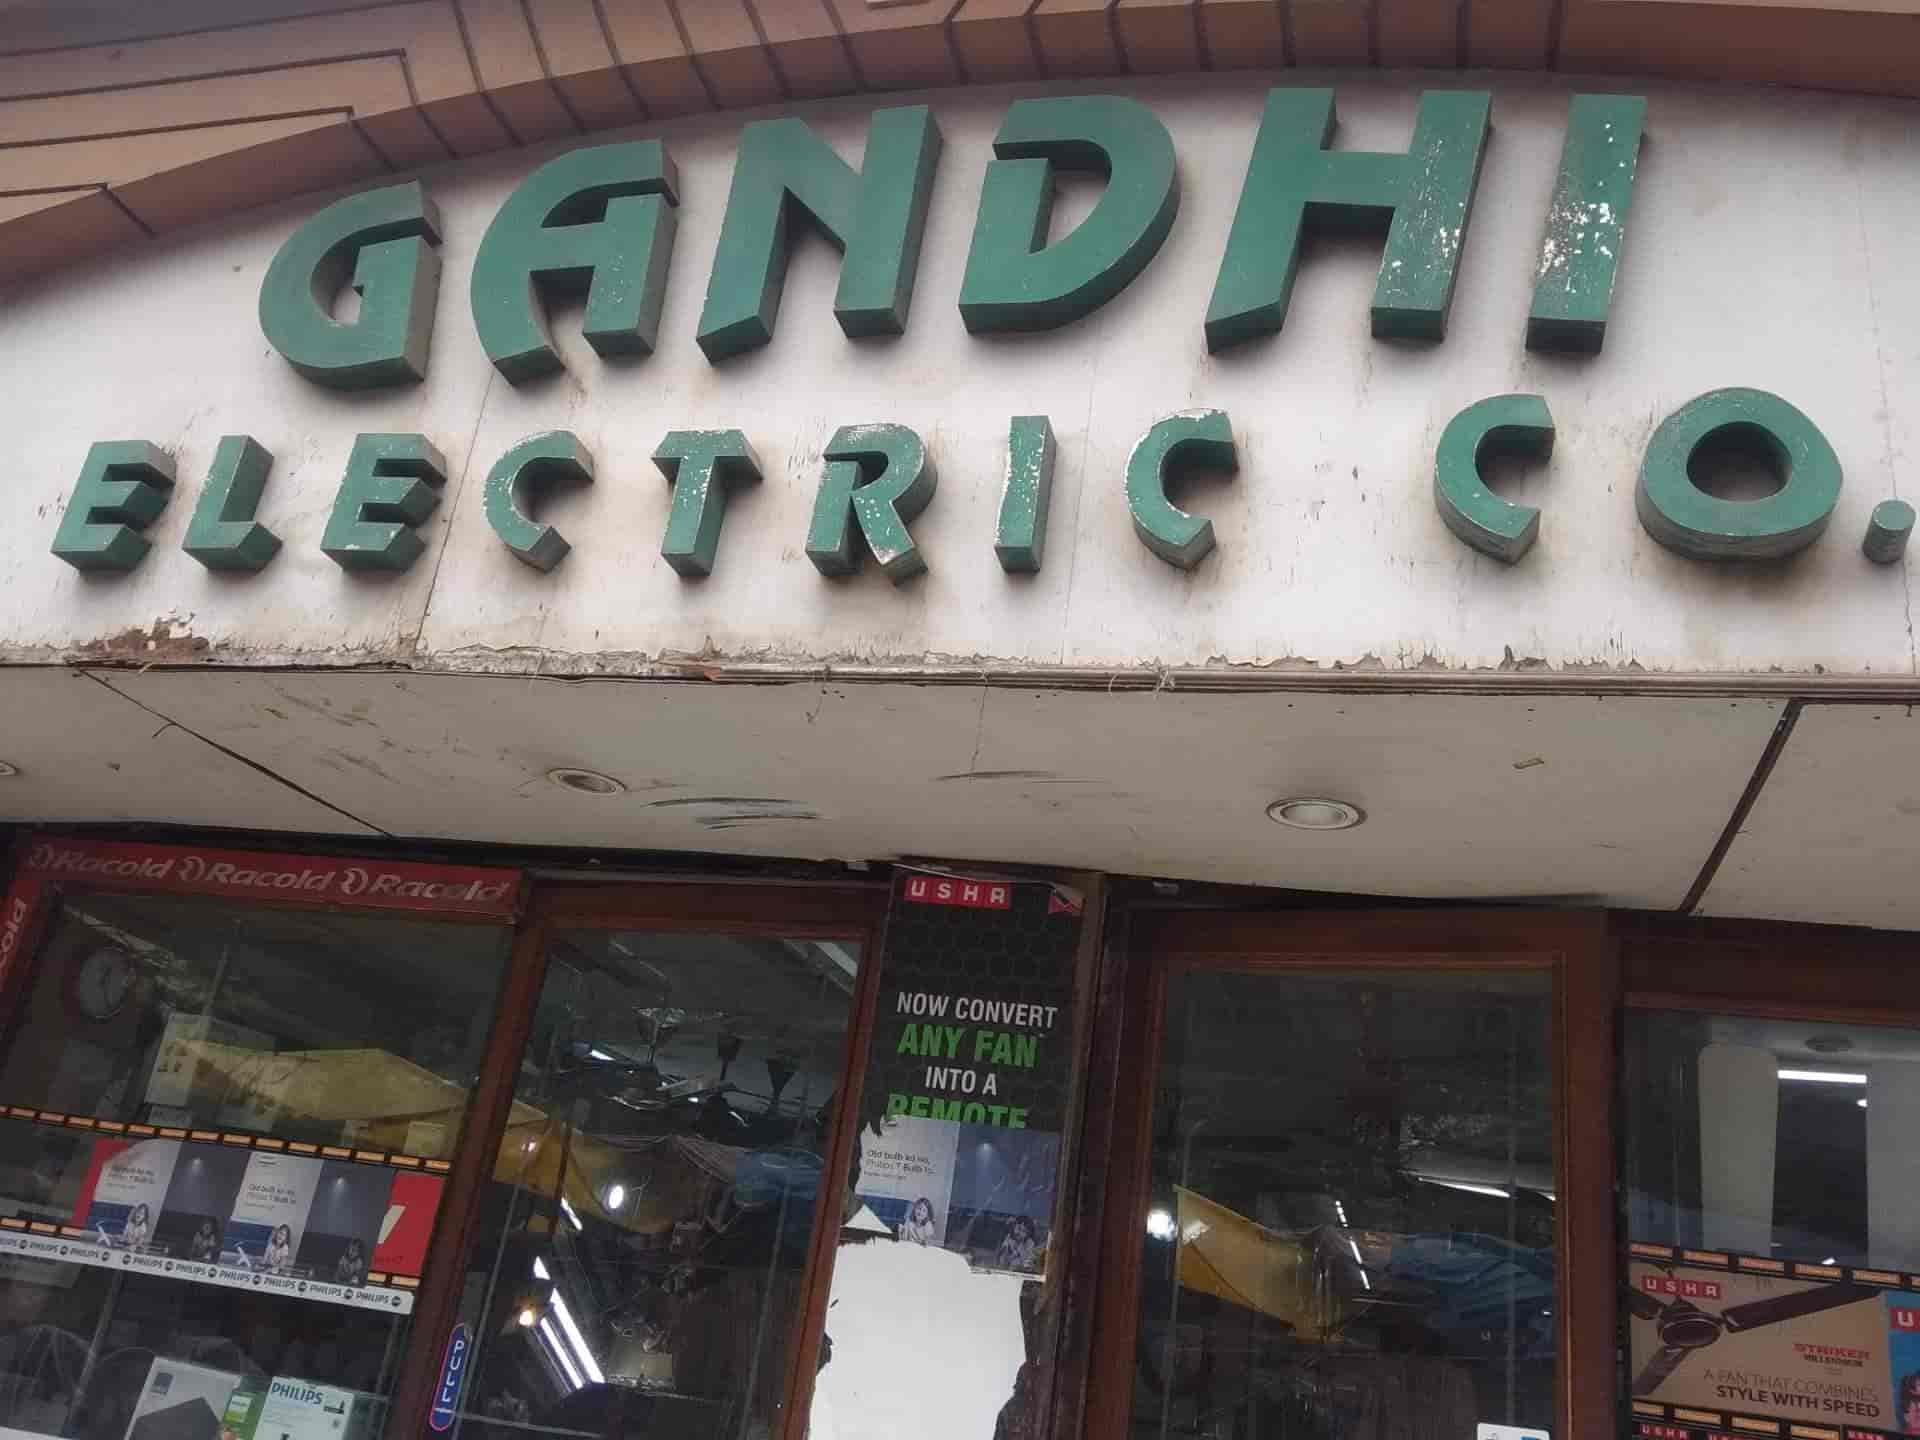 Gandhi Electric Company, Tilak Nagar - Air Cooler Dealers in